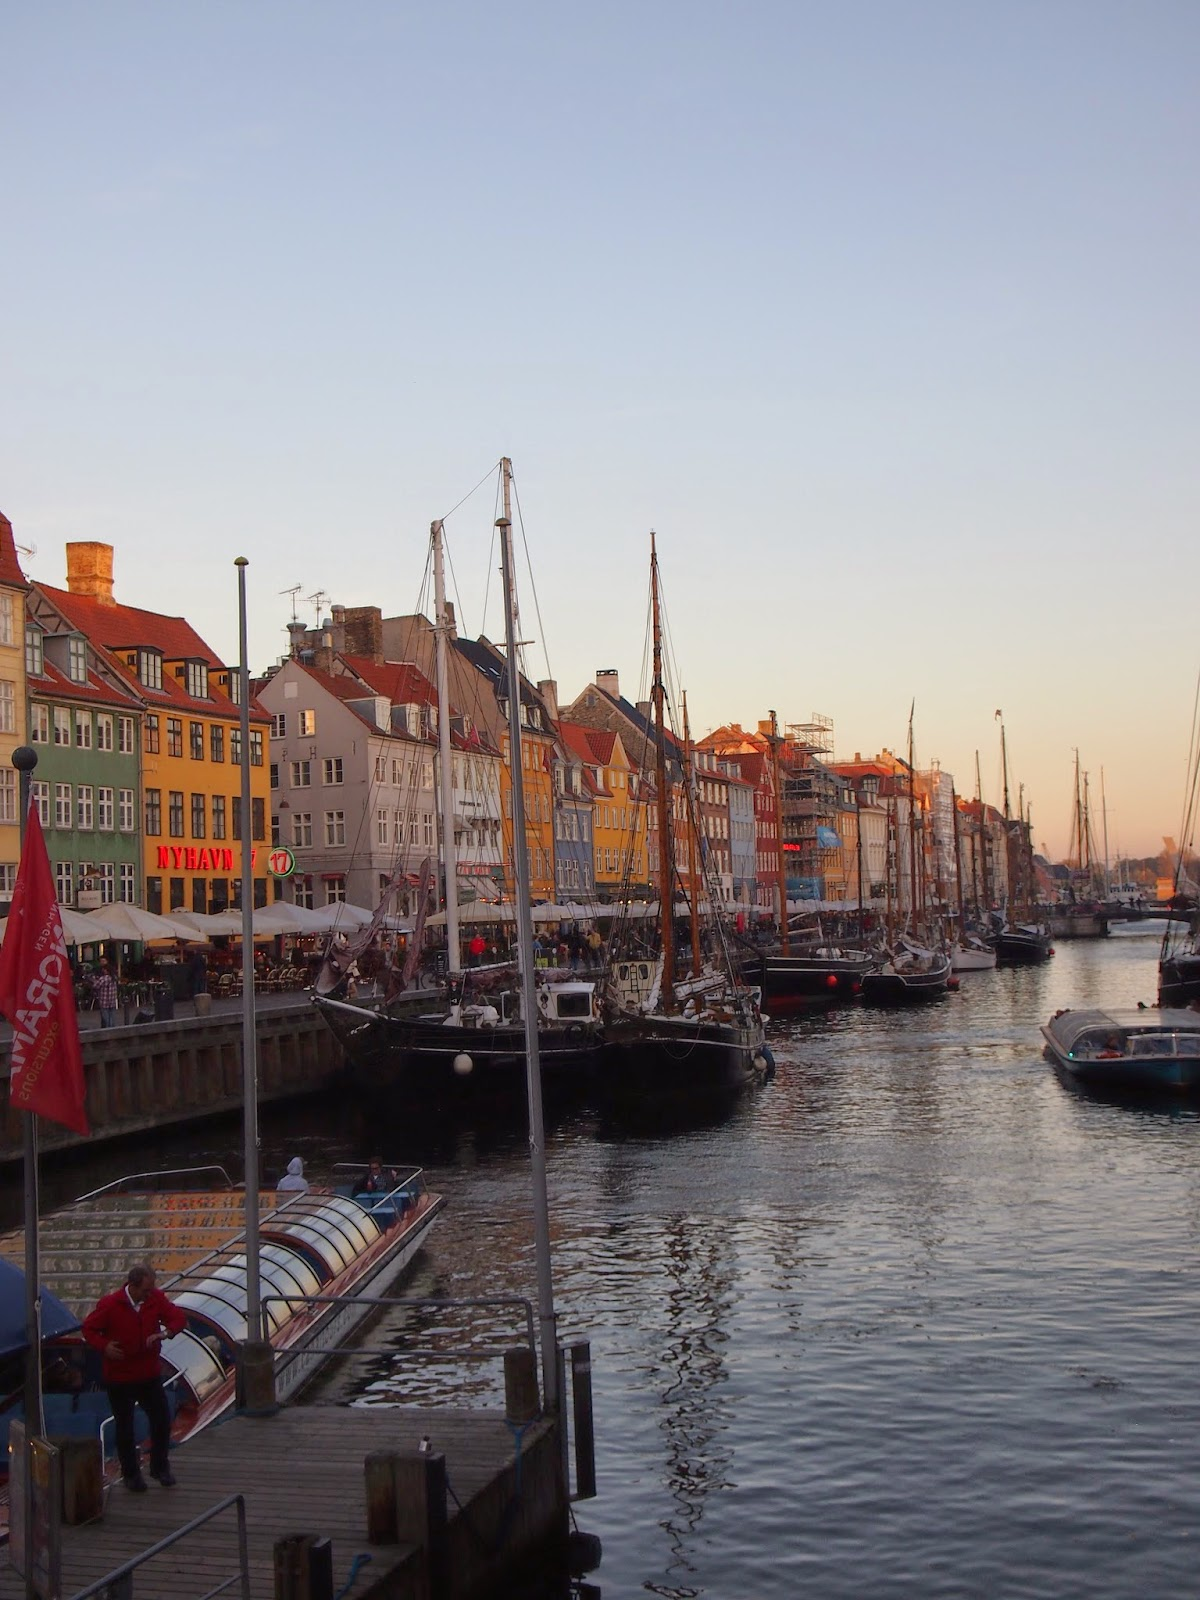 The colorful buildings of Nyhavn